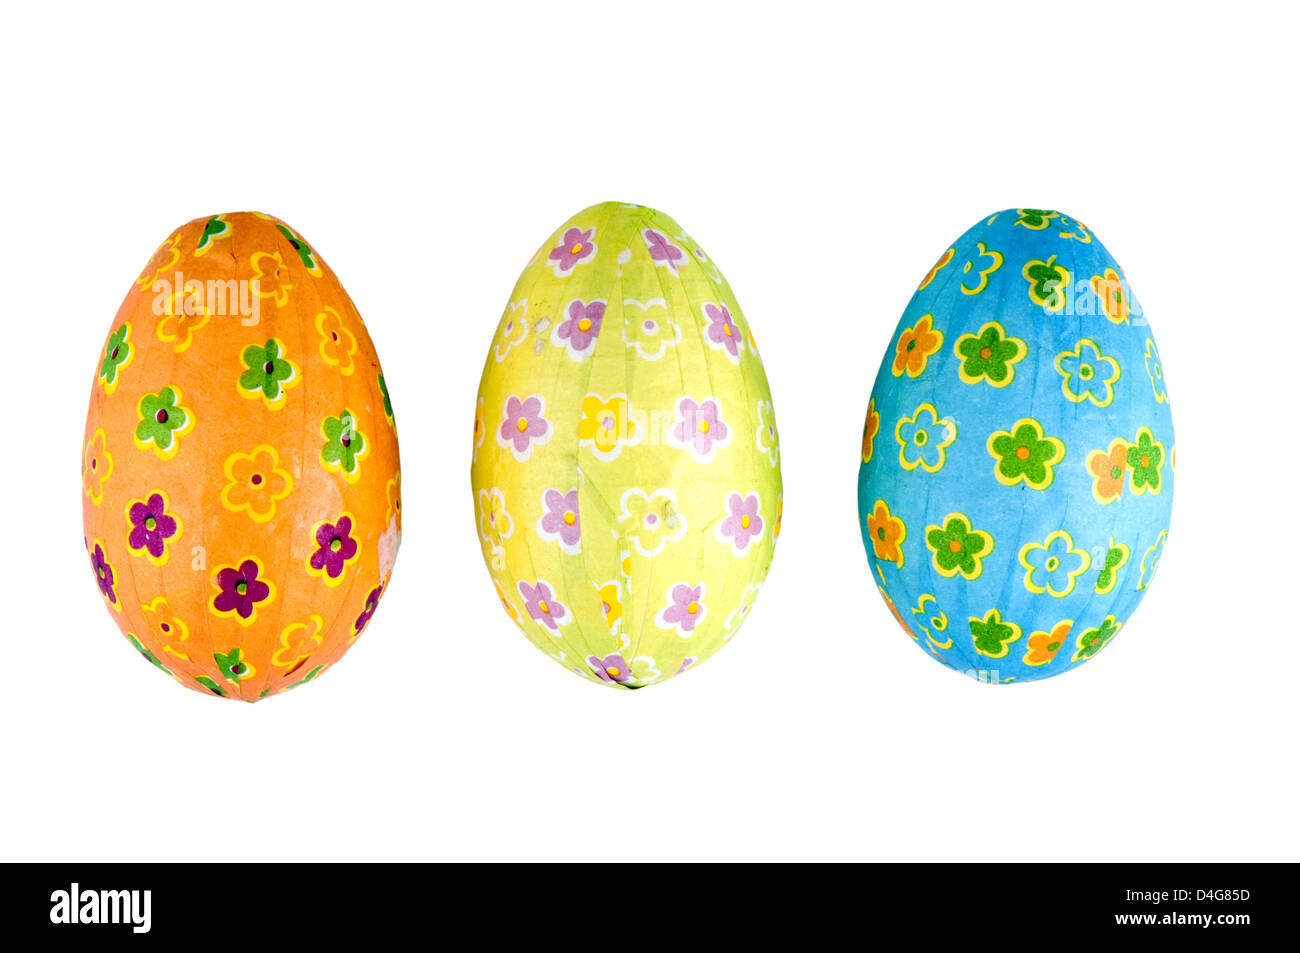 three Easter eggs isolated on white background - Stock Image